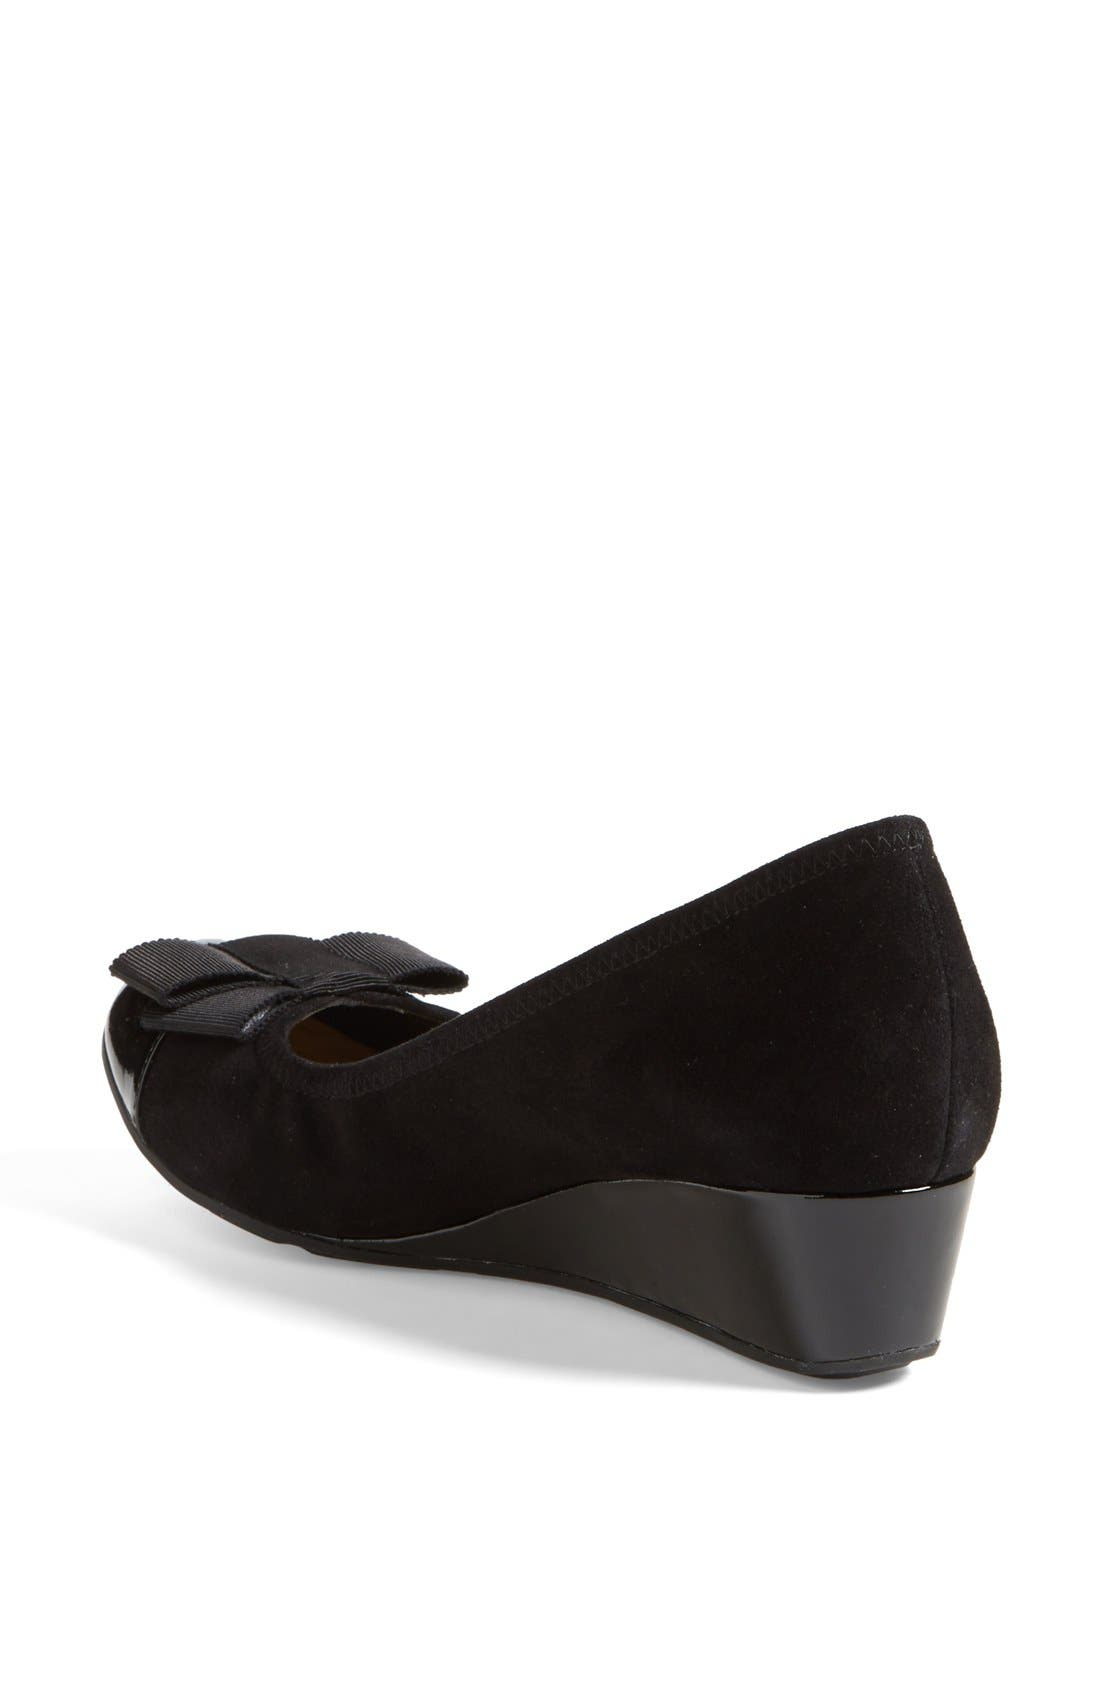 Alternate Image 2  - Cole Haan 'Air Tali' Wedge Pump (Women)